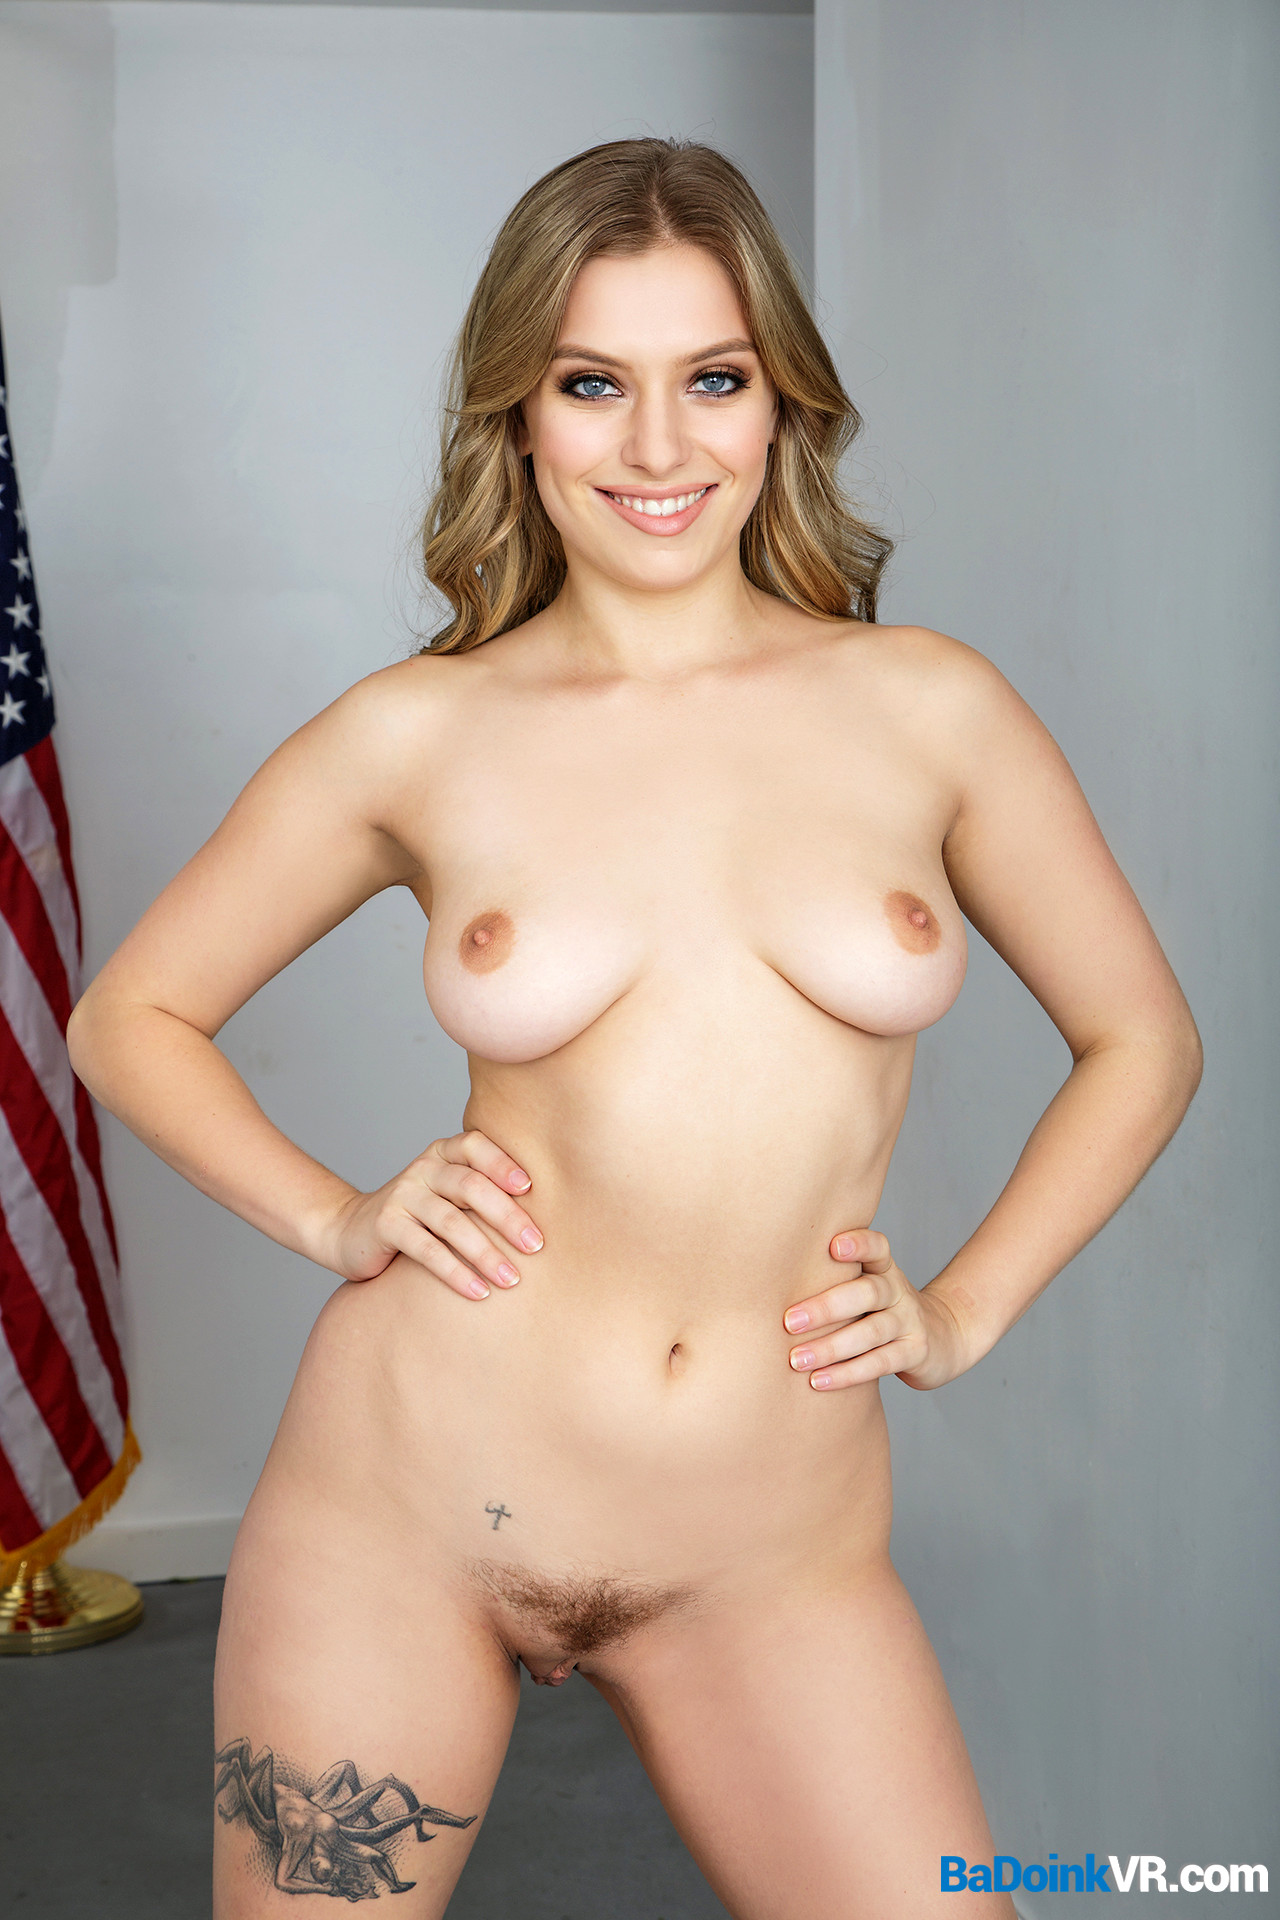 image Badoinkvr busty blair williams must cum before her flight